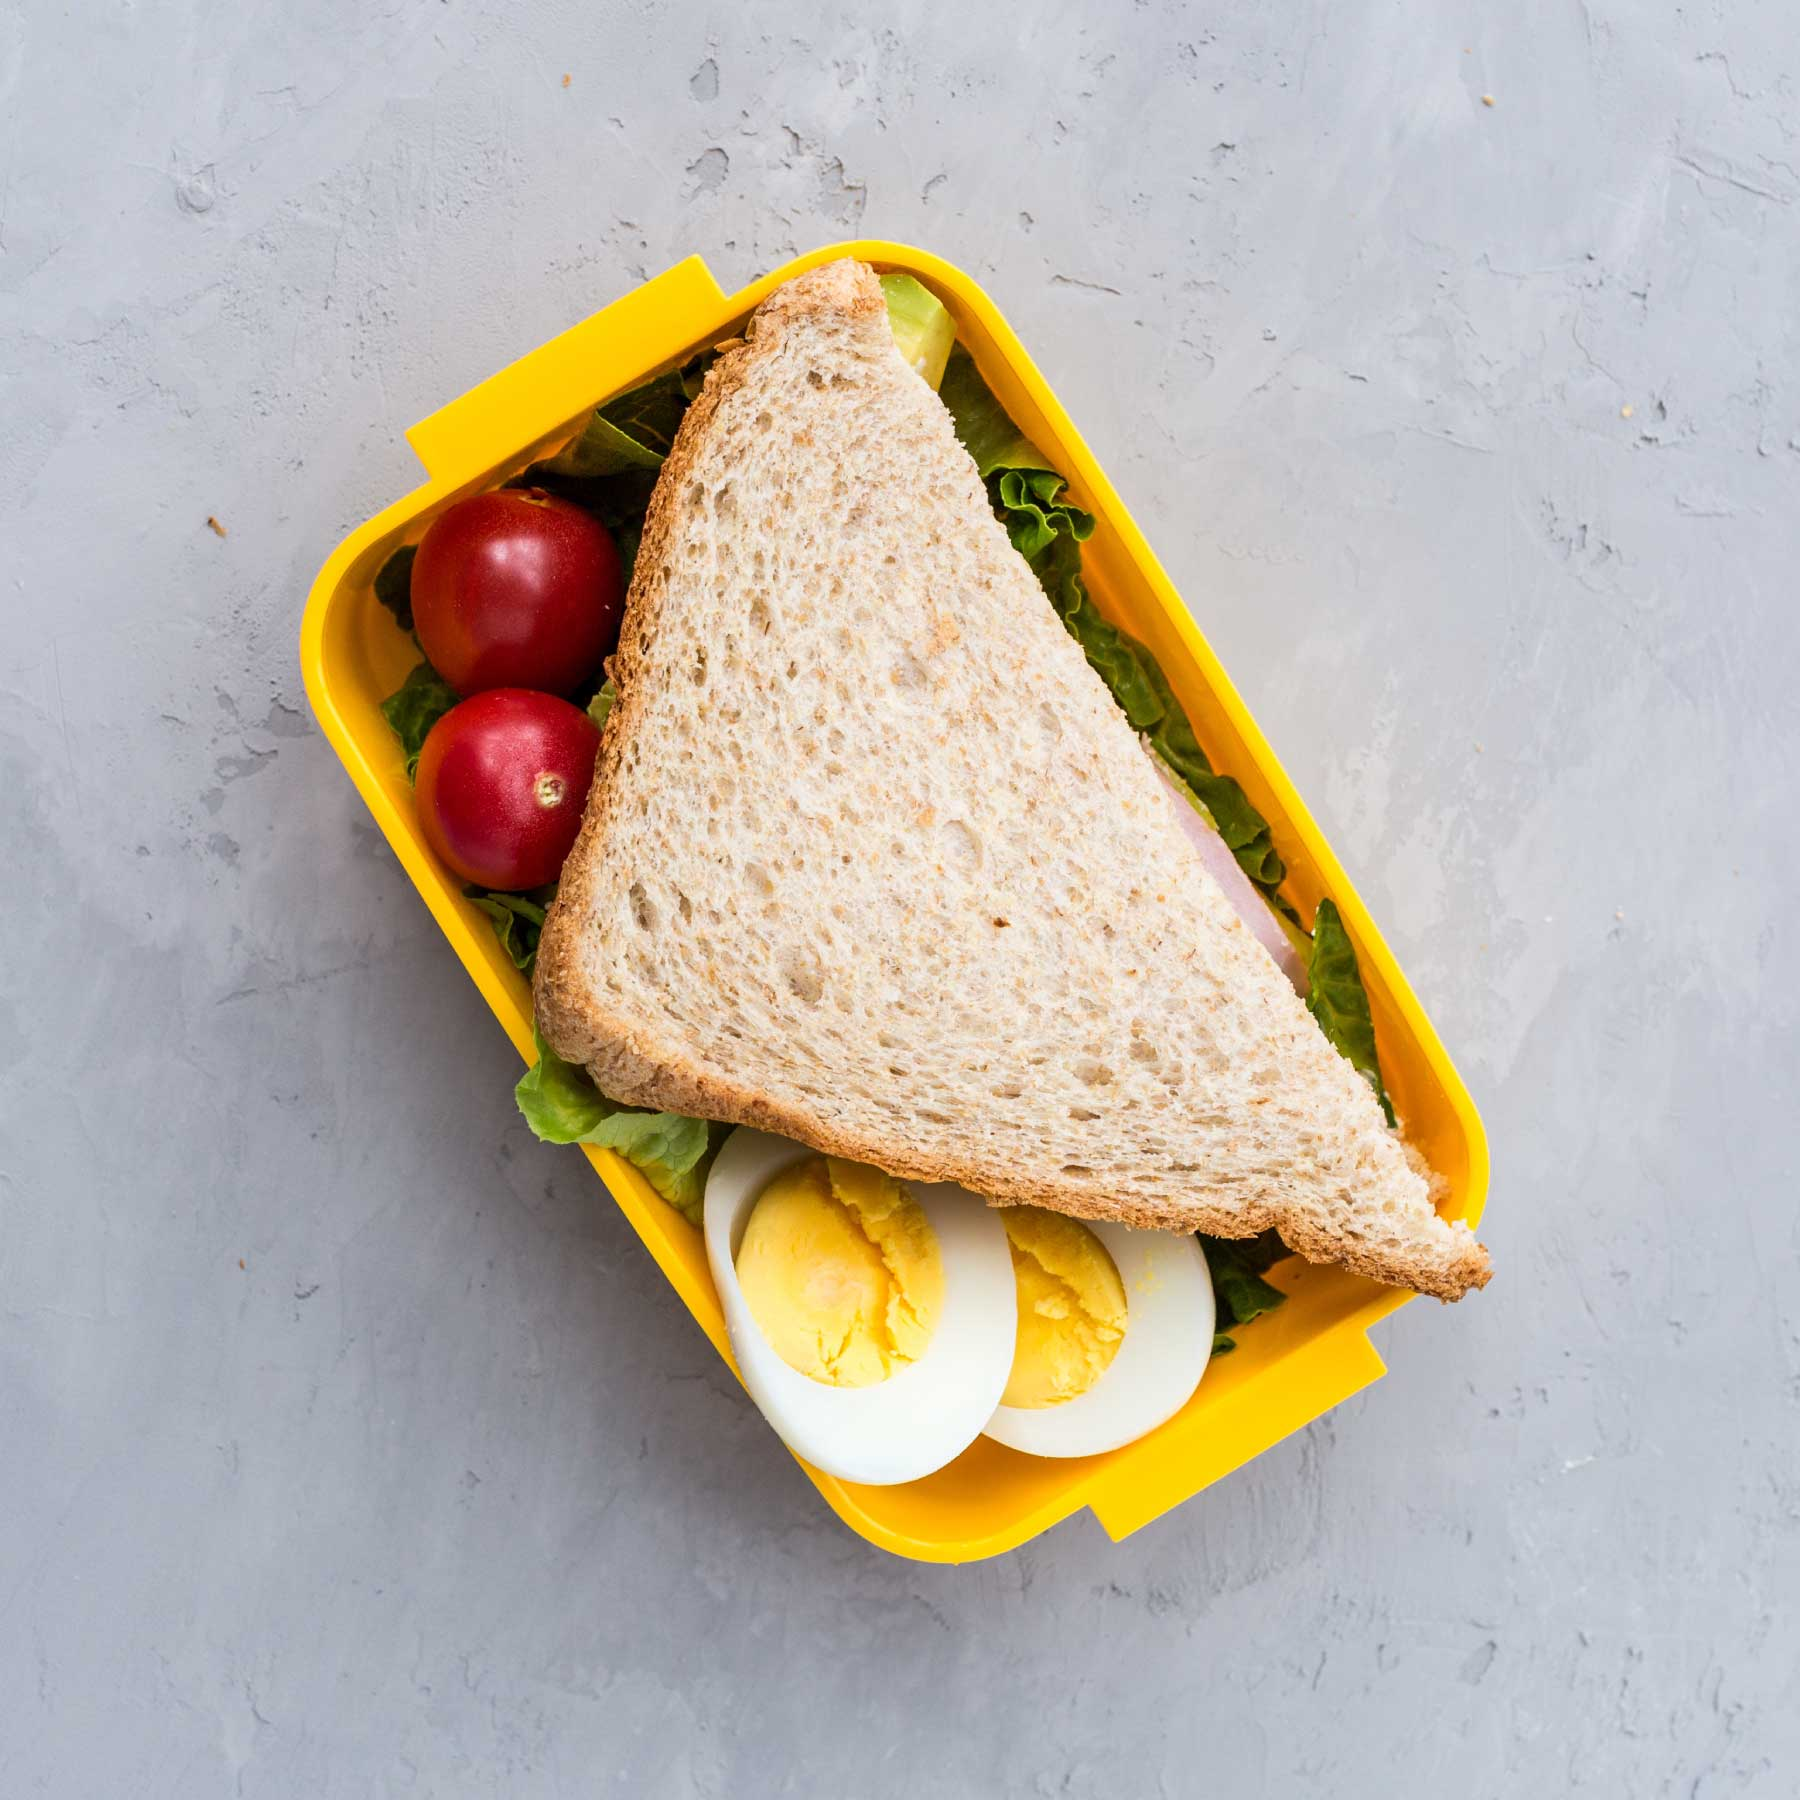 The Best Lunch Box for Non-Squashed Sammies